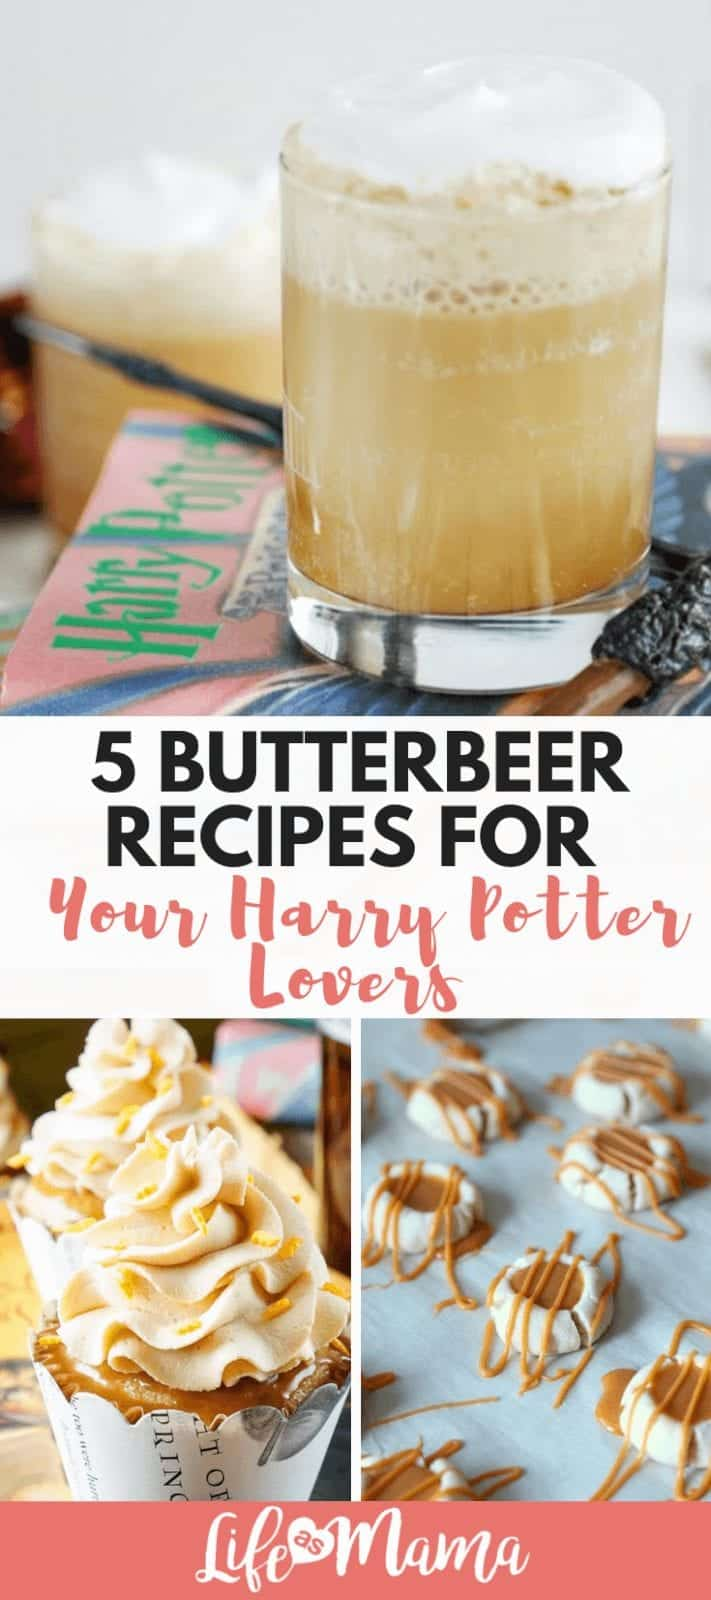 5 Butterbeer Recipes For Your Harry Potter Lovers